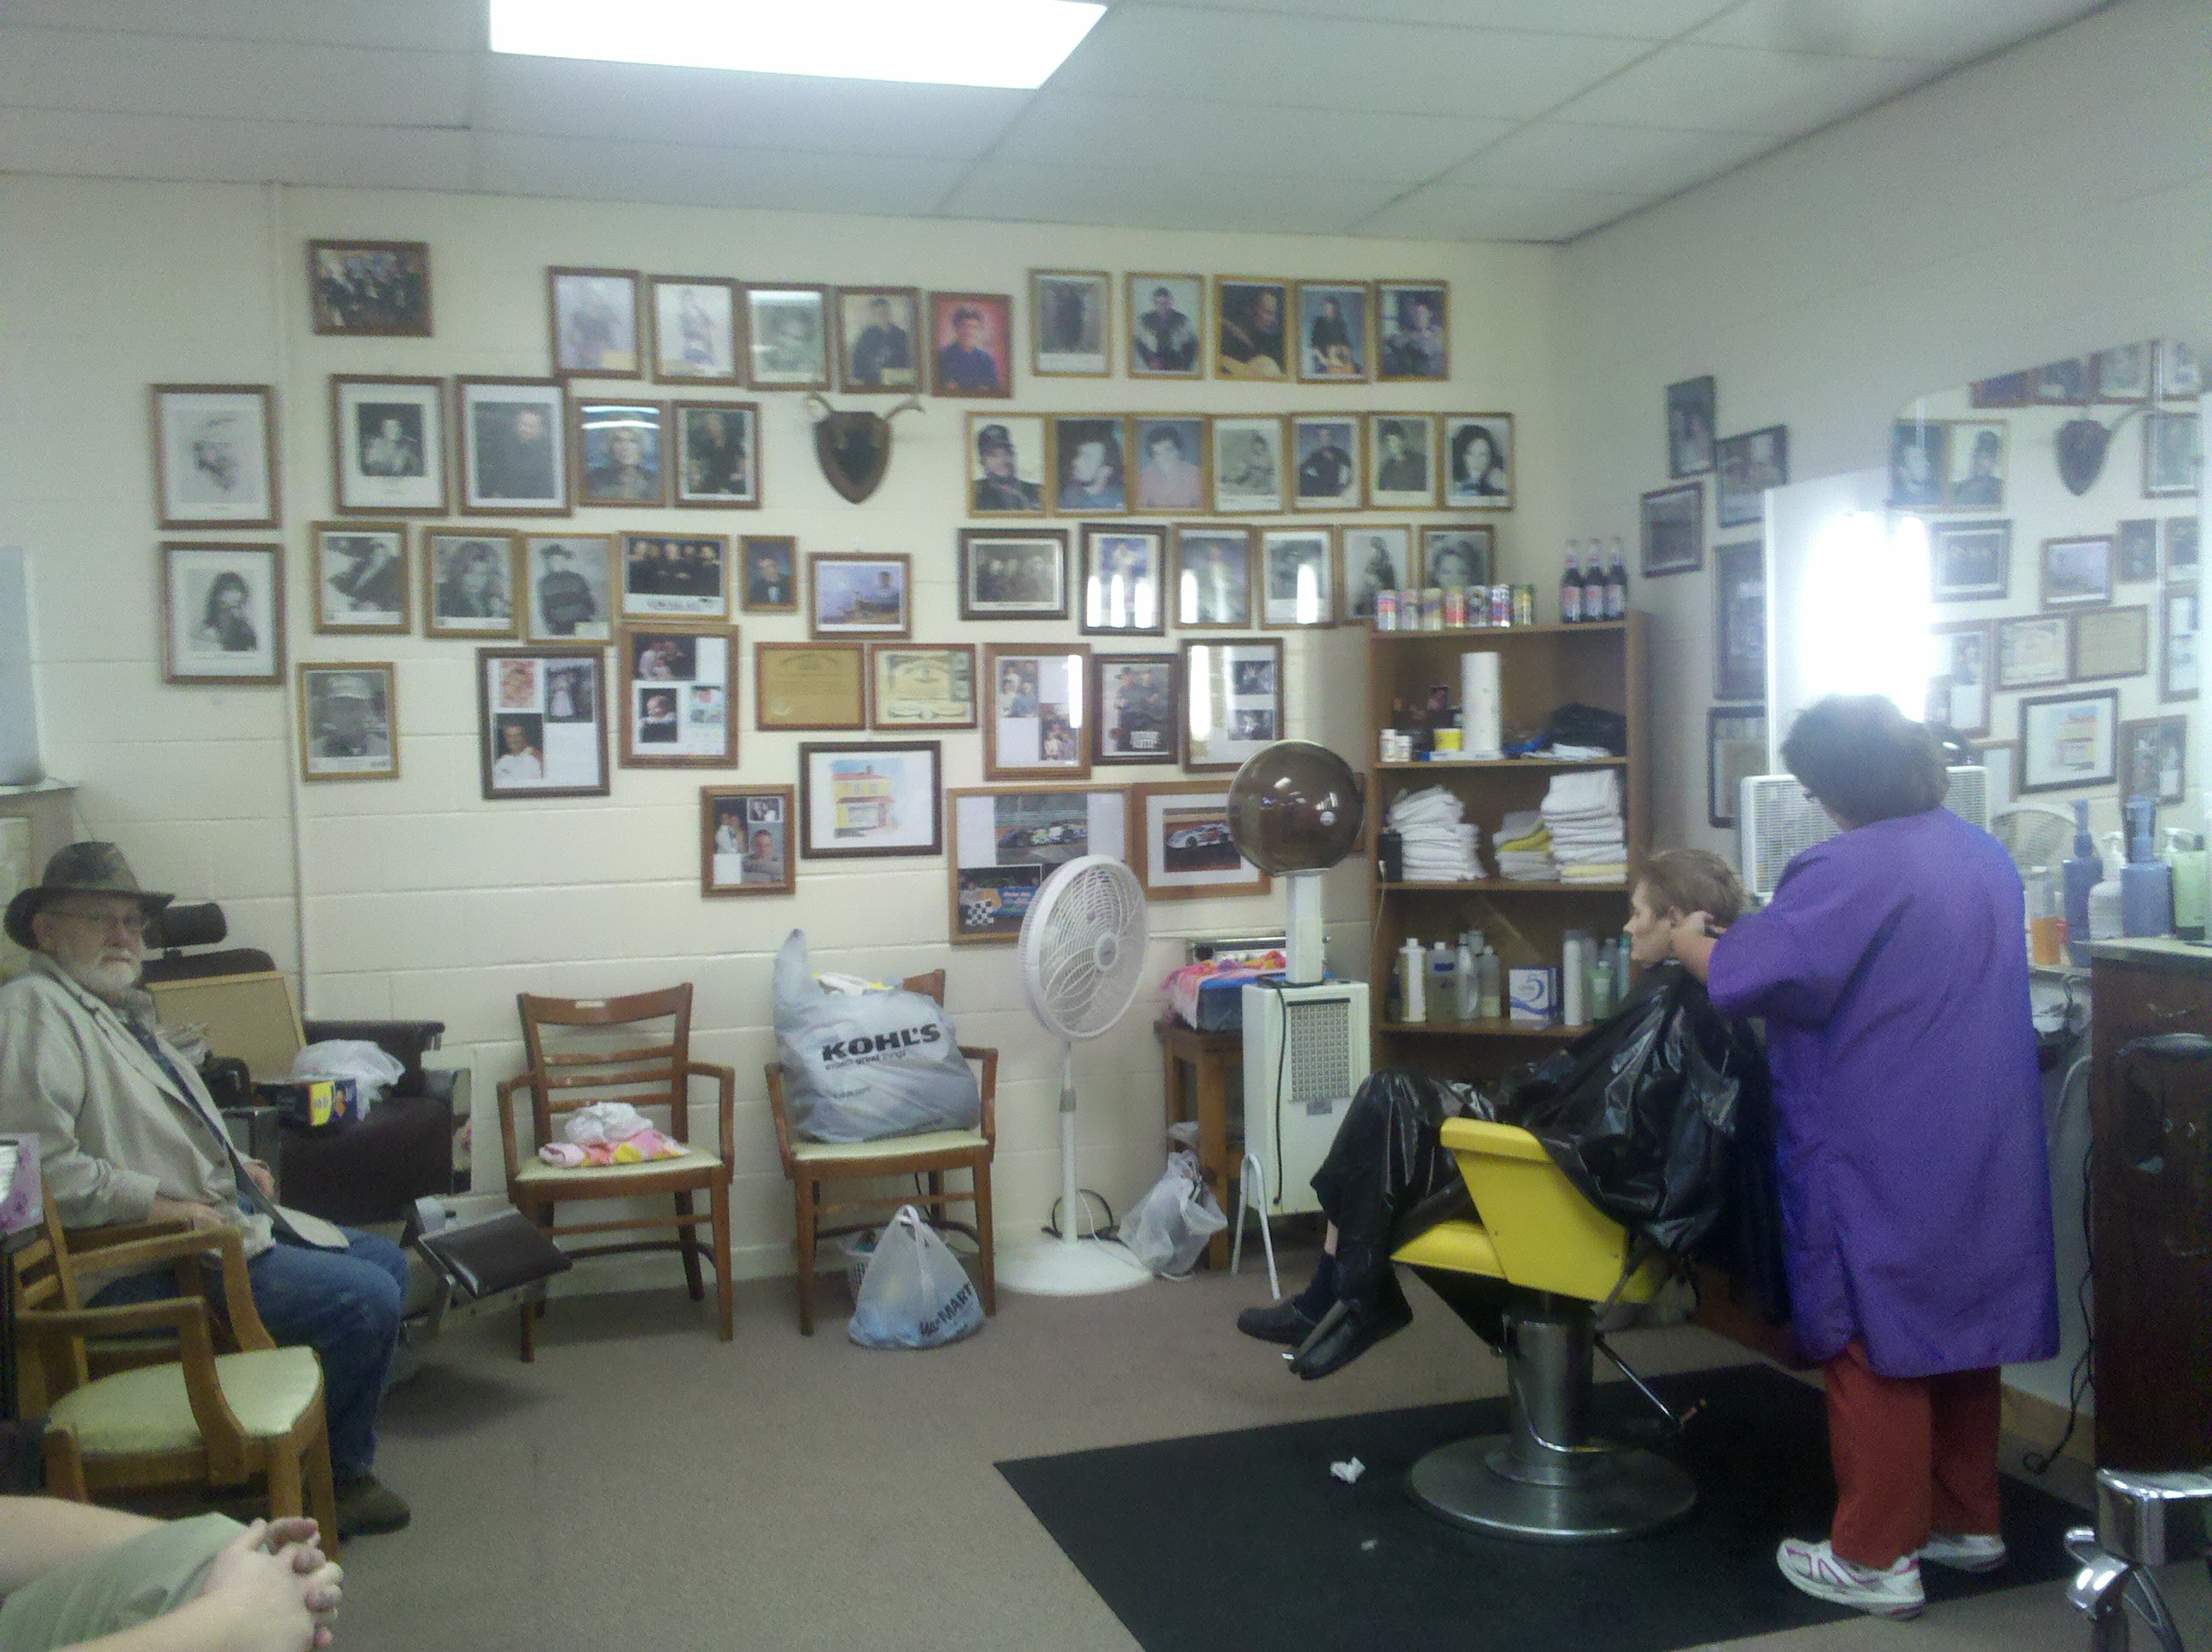 southend barber shop the southend barber shop has been a mainstay of ...